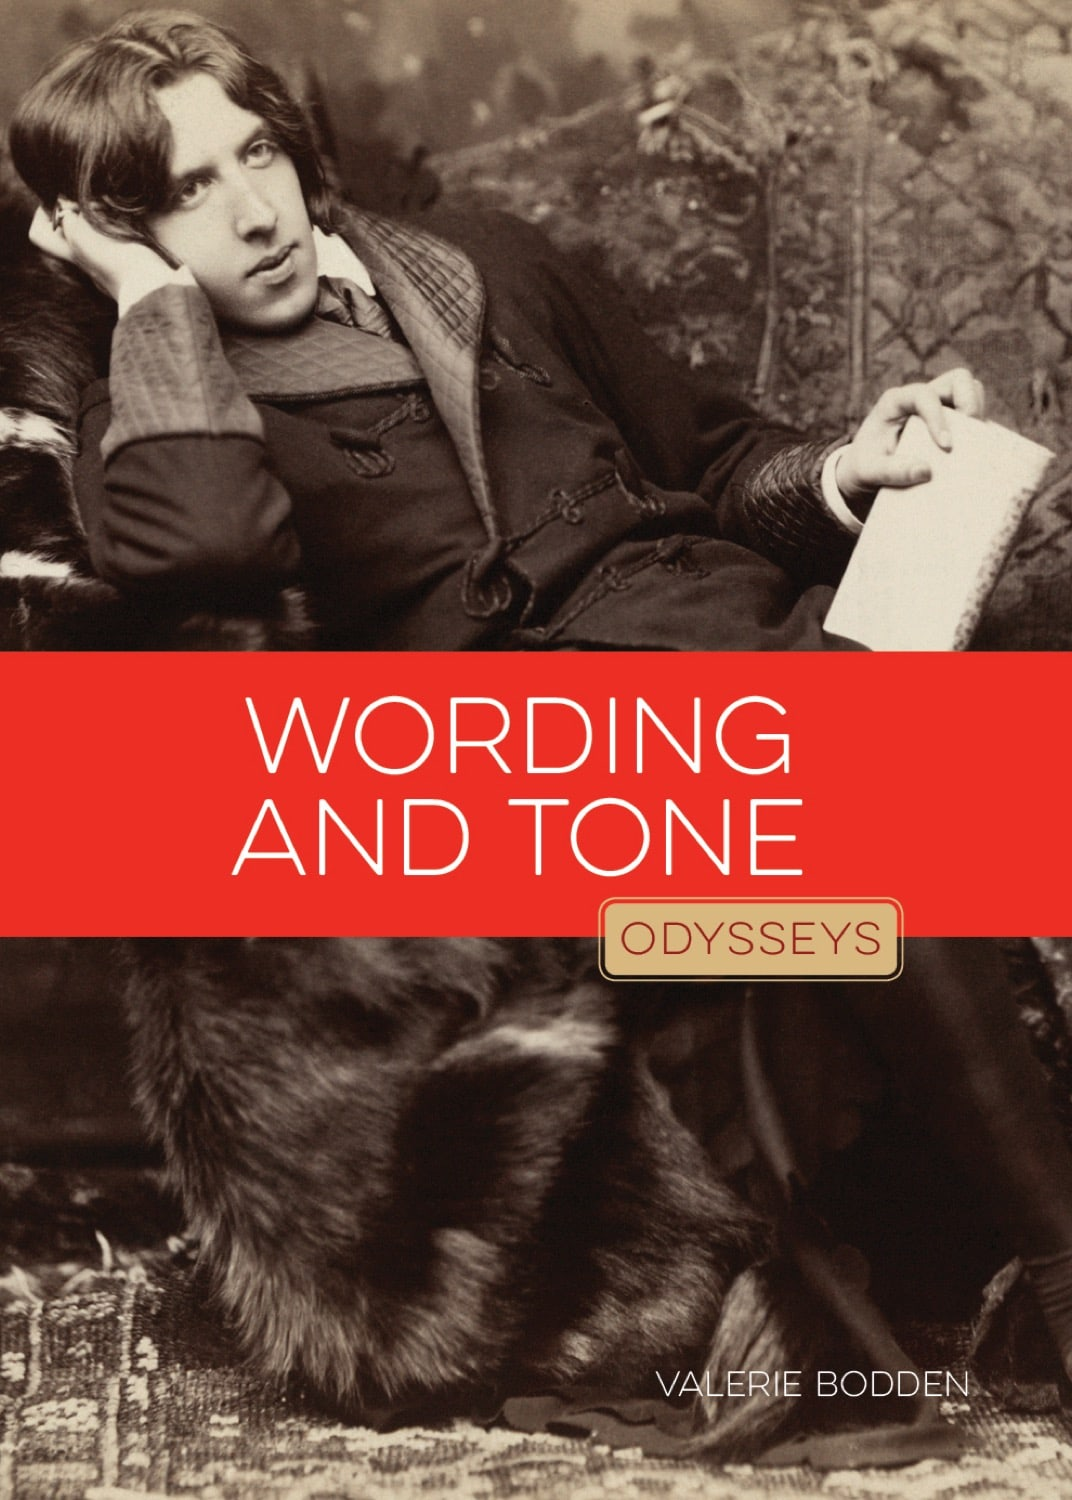 Odysseys in Prose: Wording and Tone